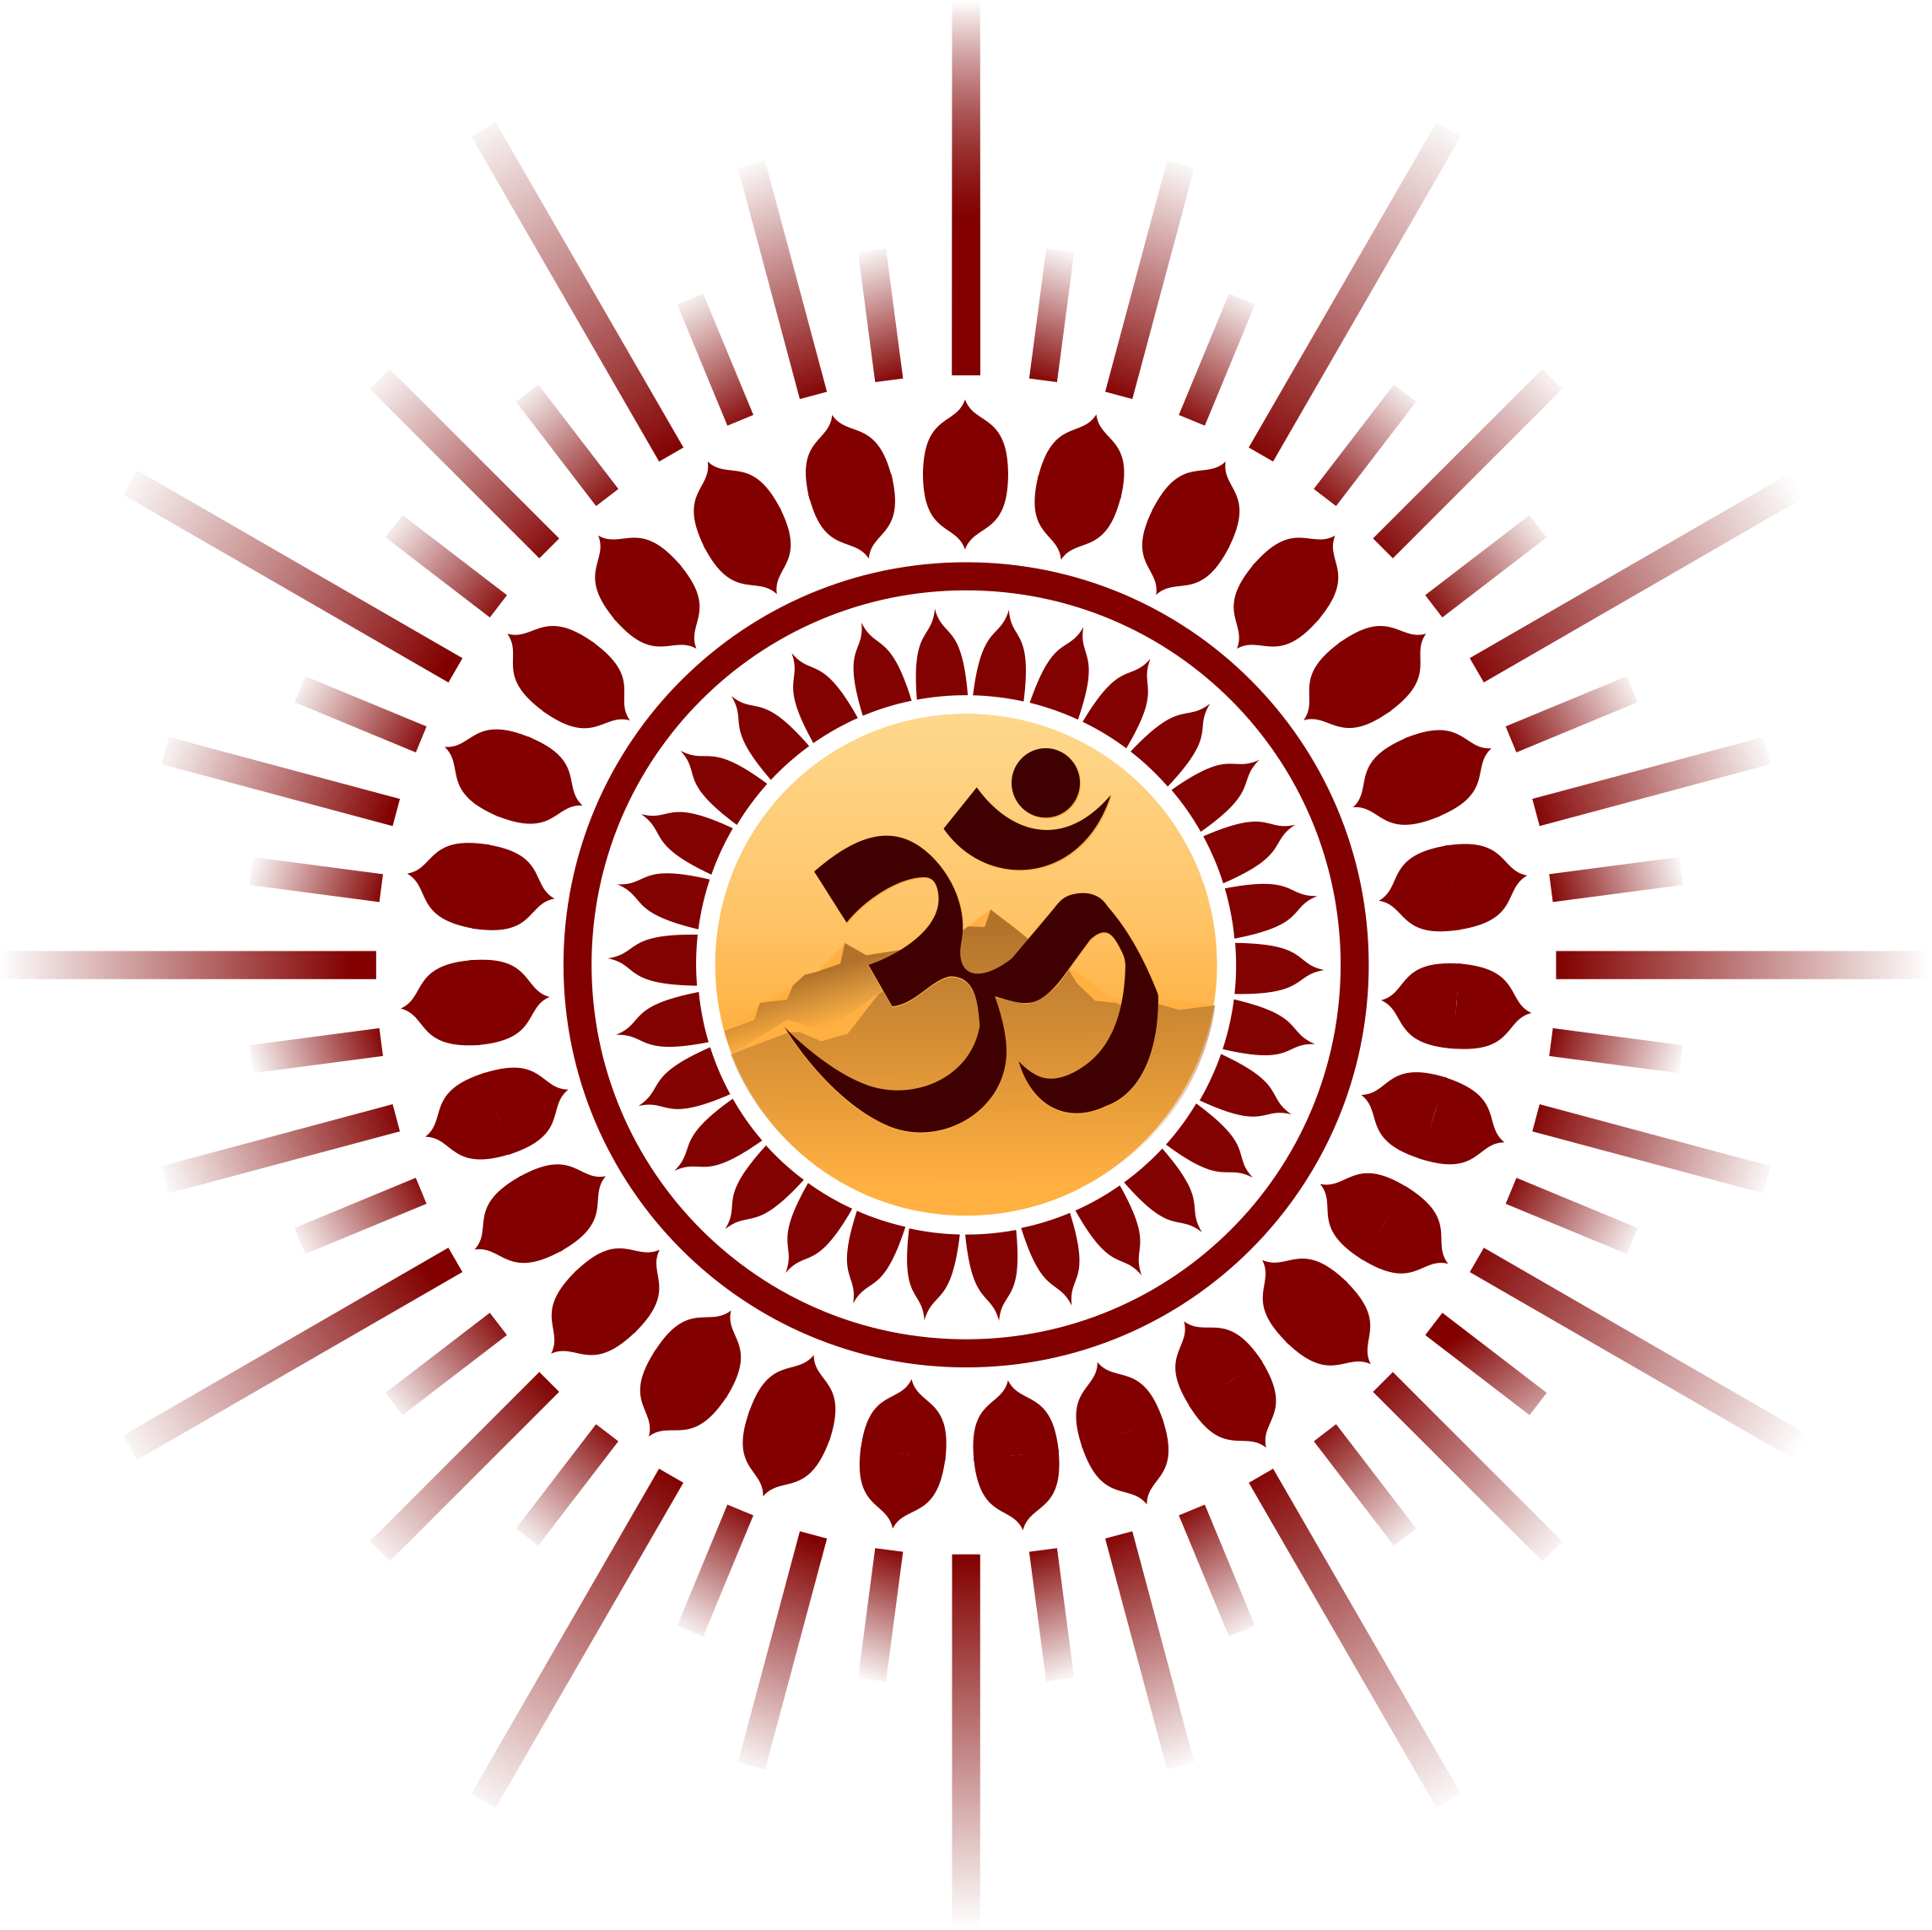 Satsang.earth logo